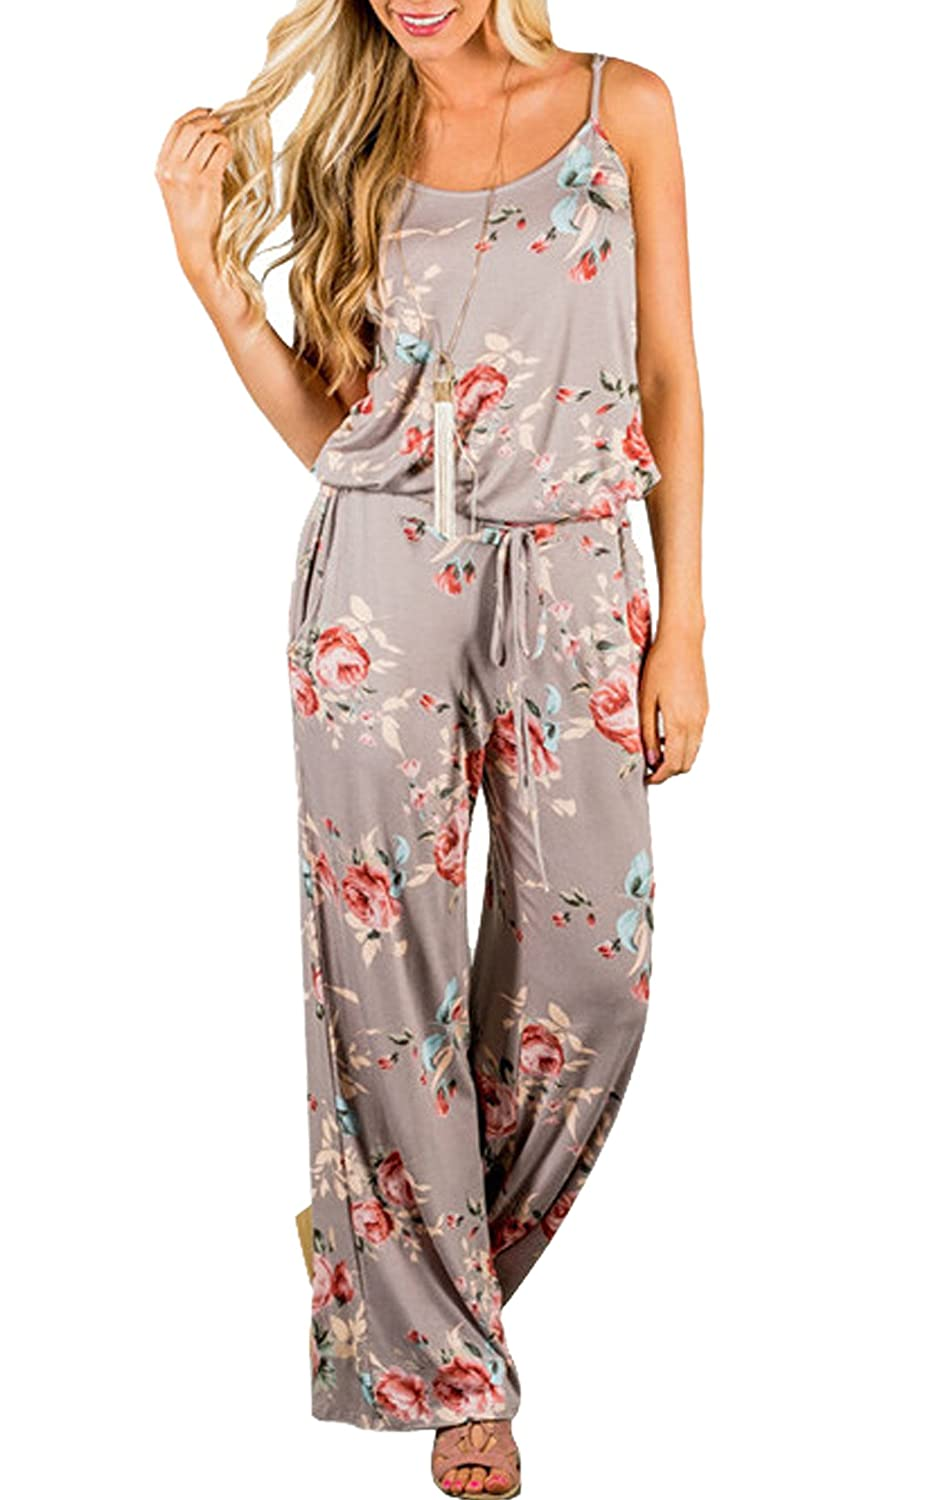 f3e4610b4c2 ECOWISH Womens Jumpsuits Summer Floral Printed Spaghetti Strap Sleeveless  Casual Jumpsuit Rompers